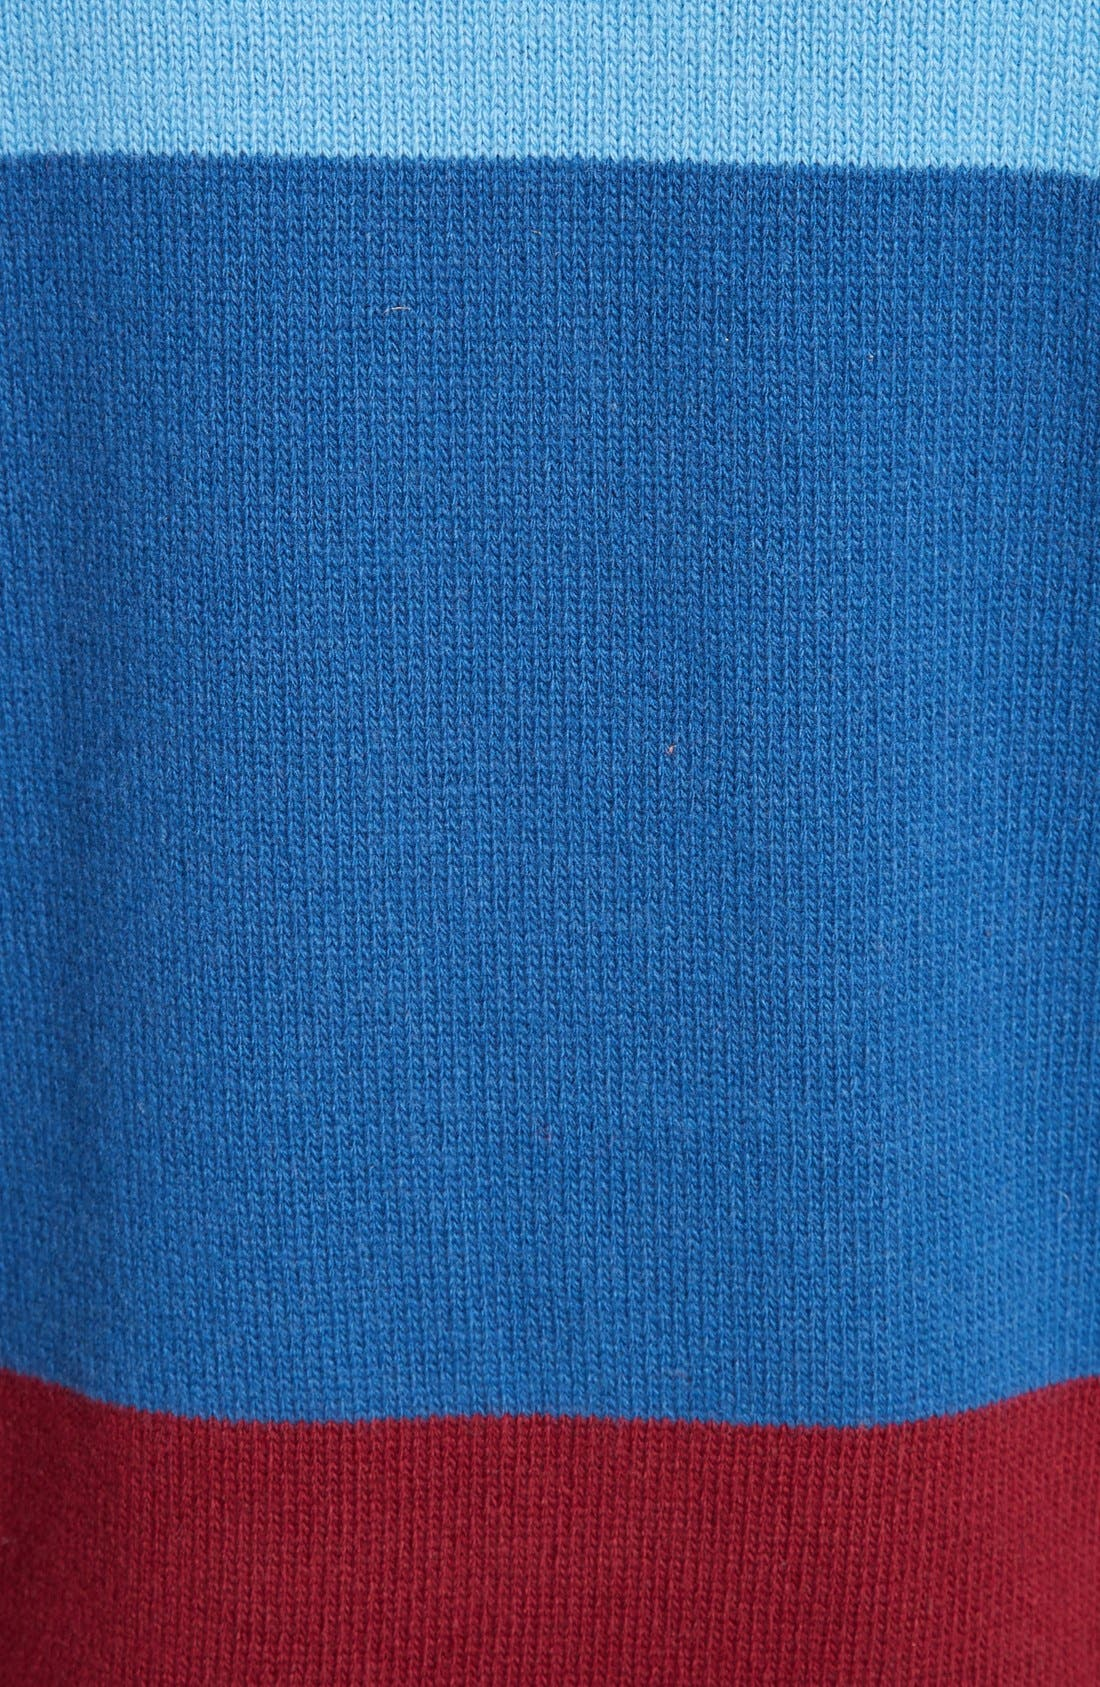 Alternate Image 3  - Stella McCartney 'Landscape' Intarsia Knit Wool Sweater